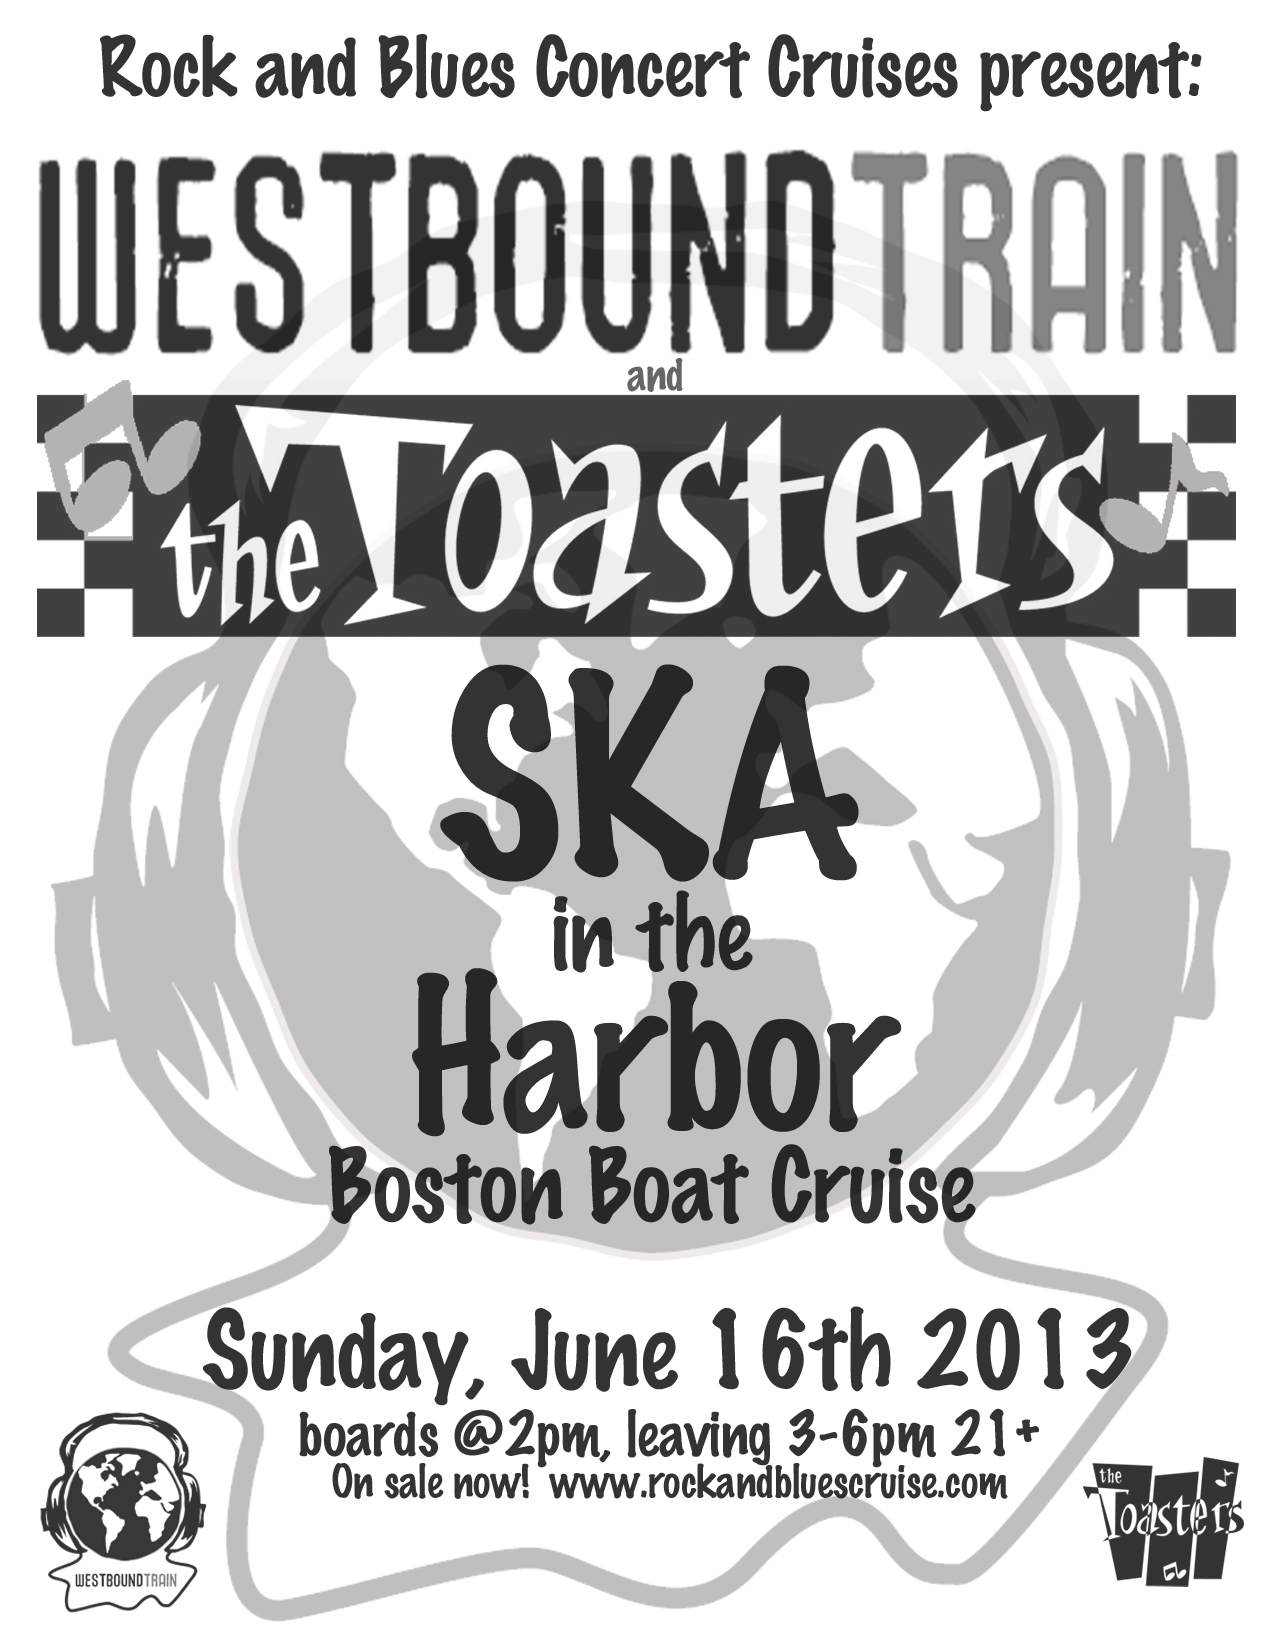 The Toasters and Westbound Train - Ska in the Harbor Boat Cruise